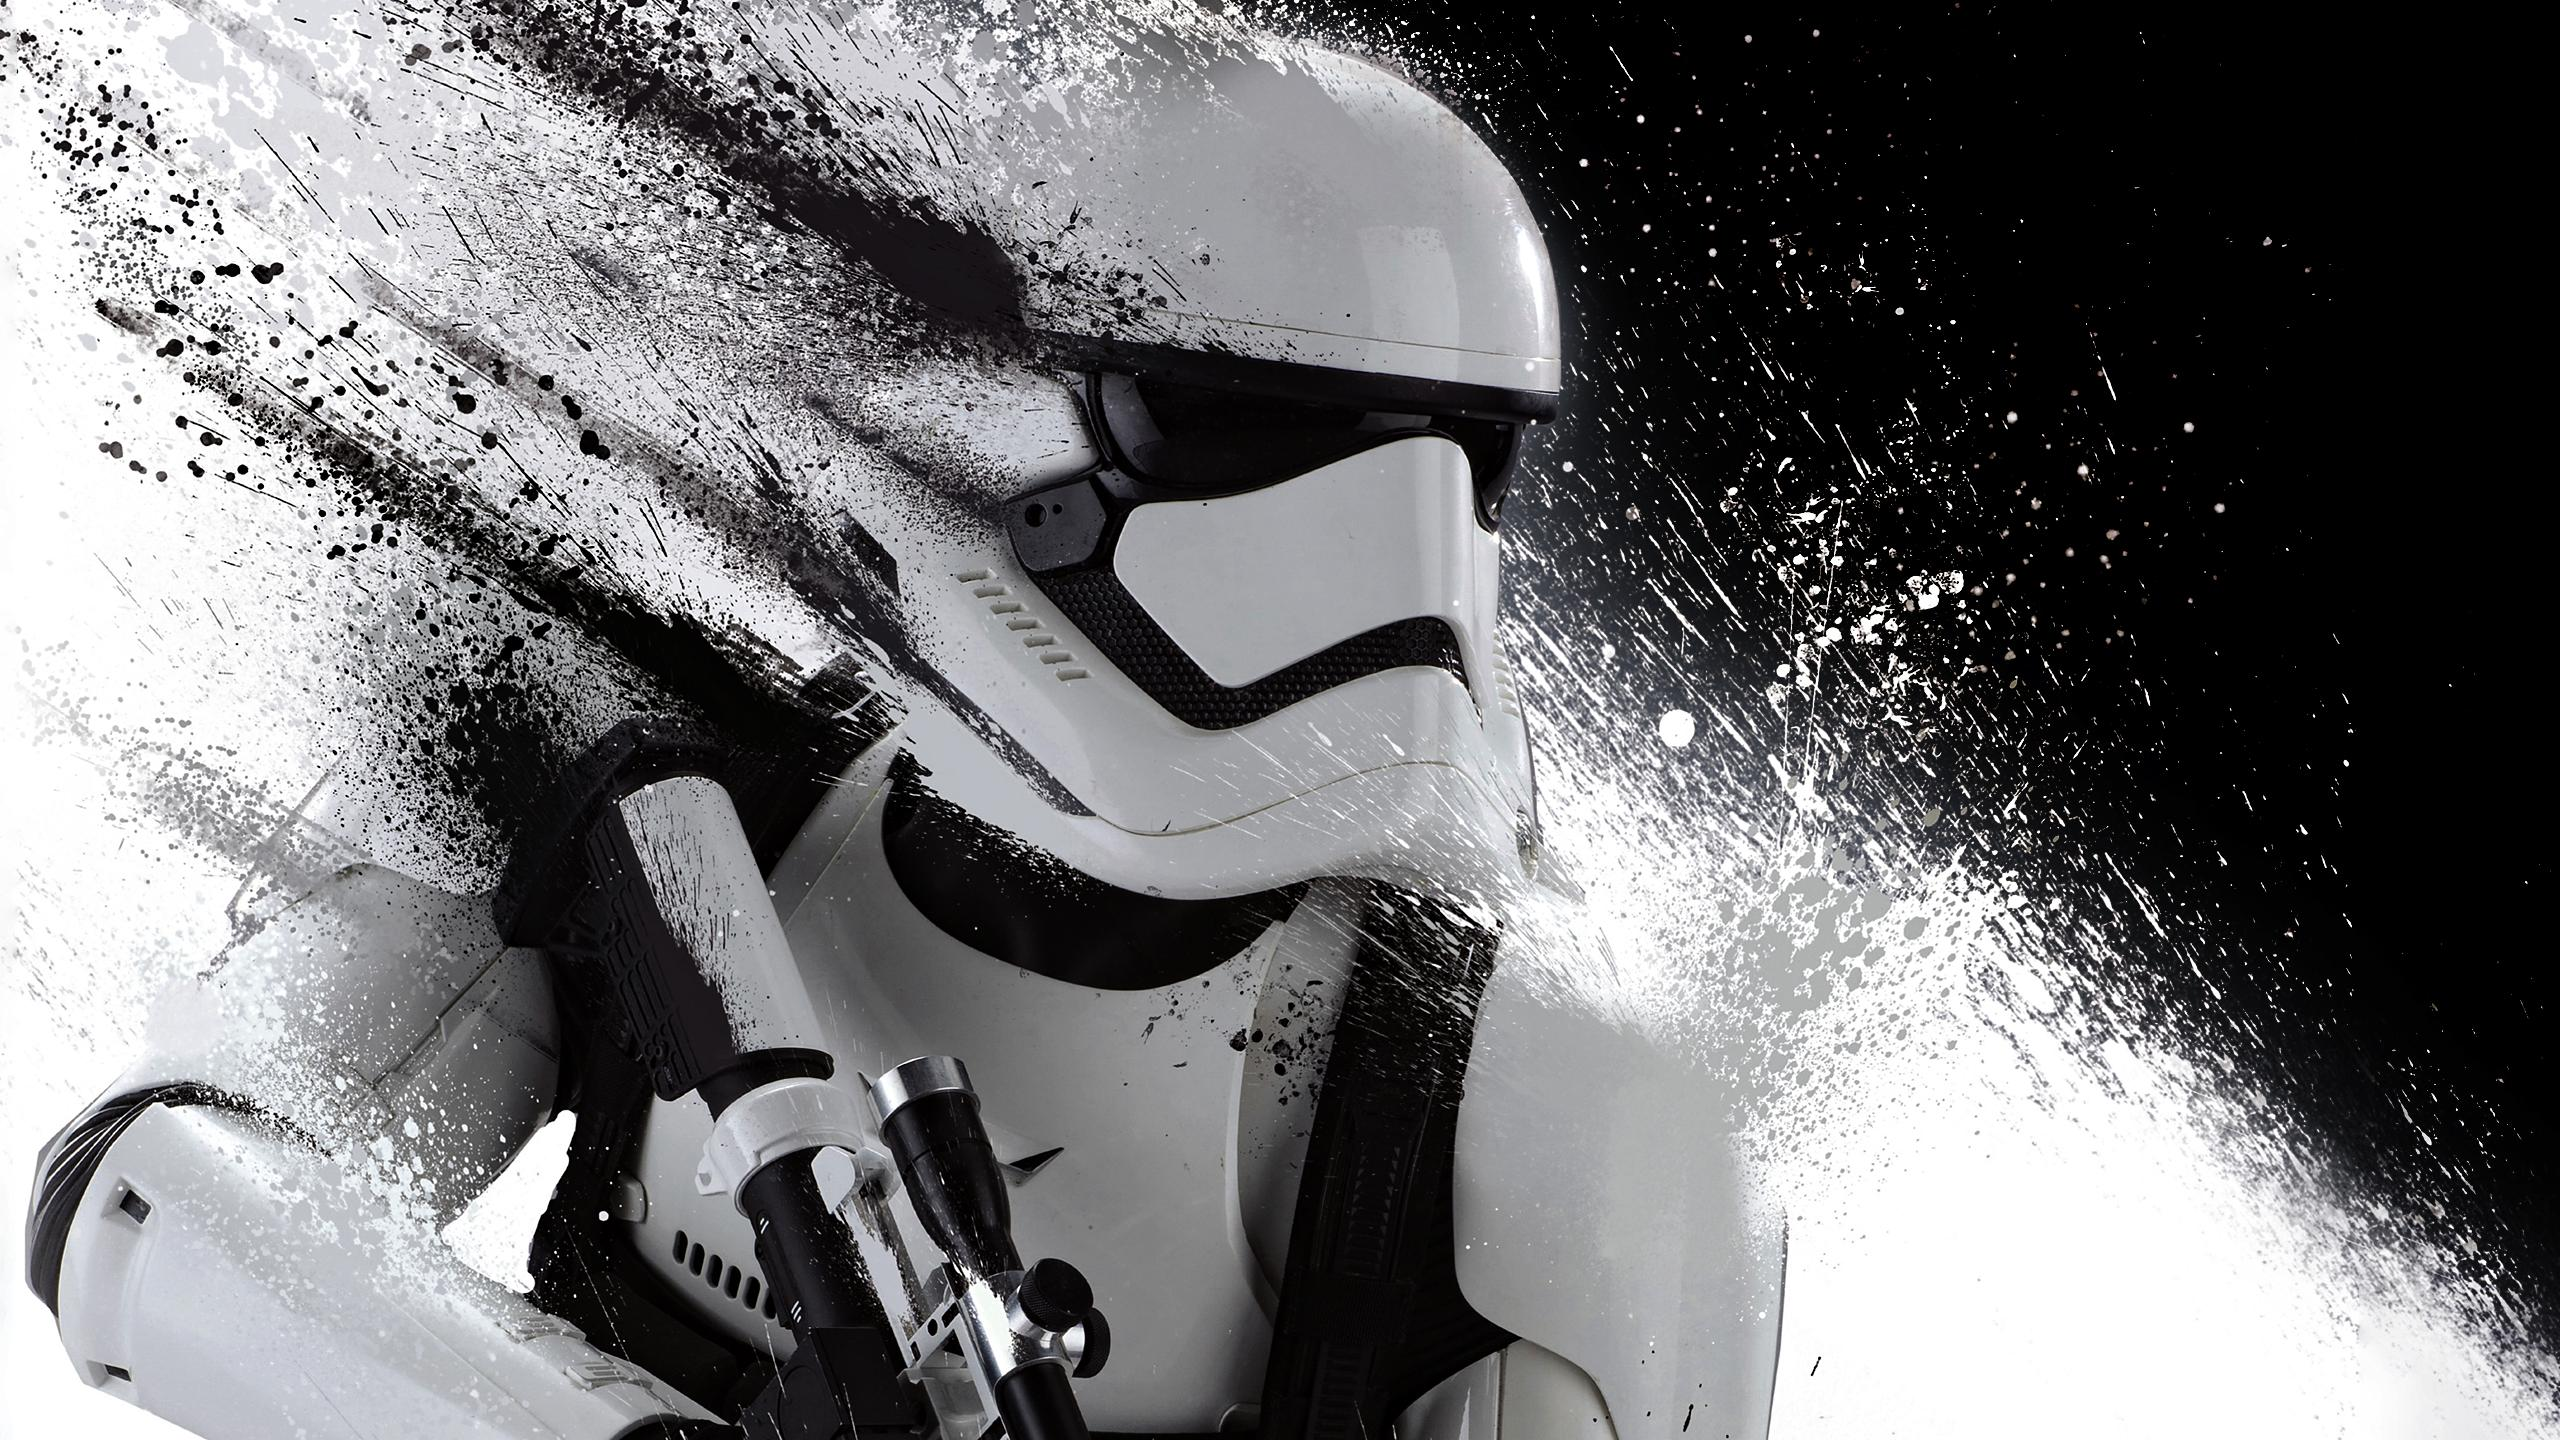 Star Wars Episode VII The Force Awakens Stormtrooper Wallpaper